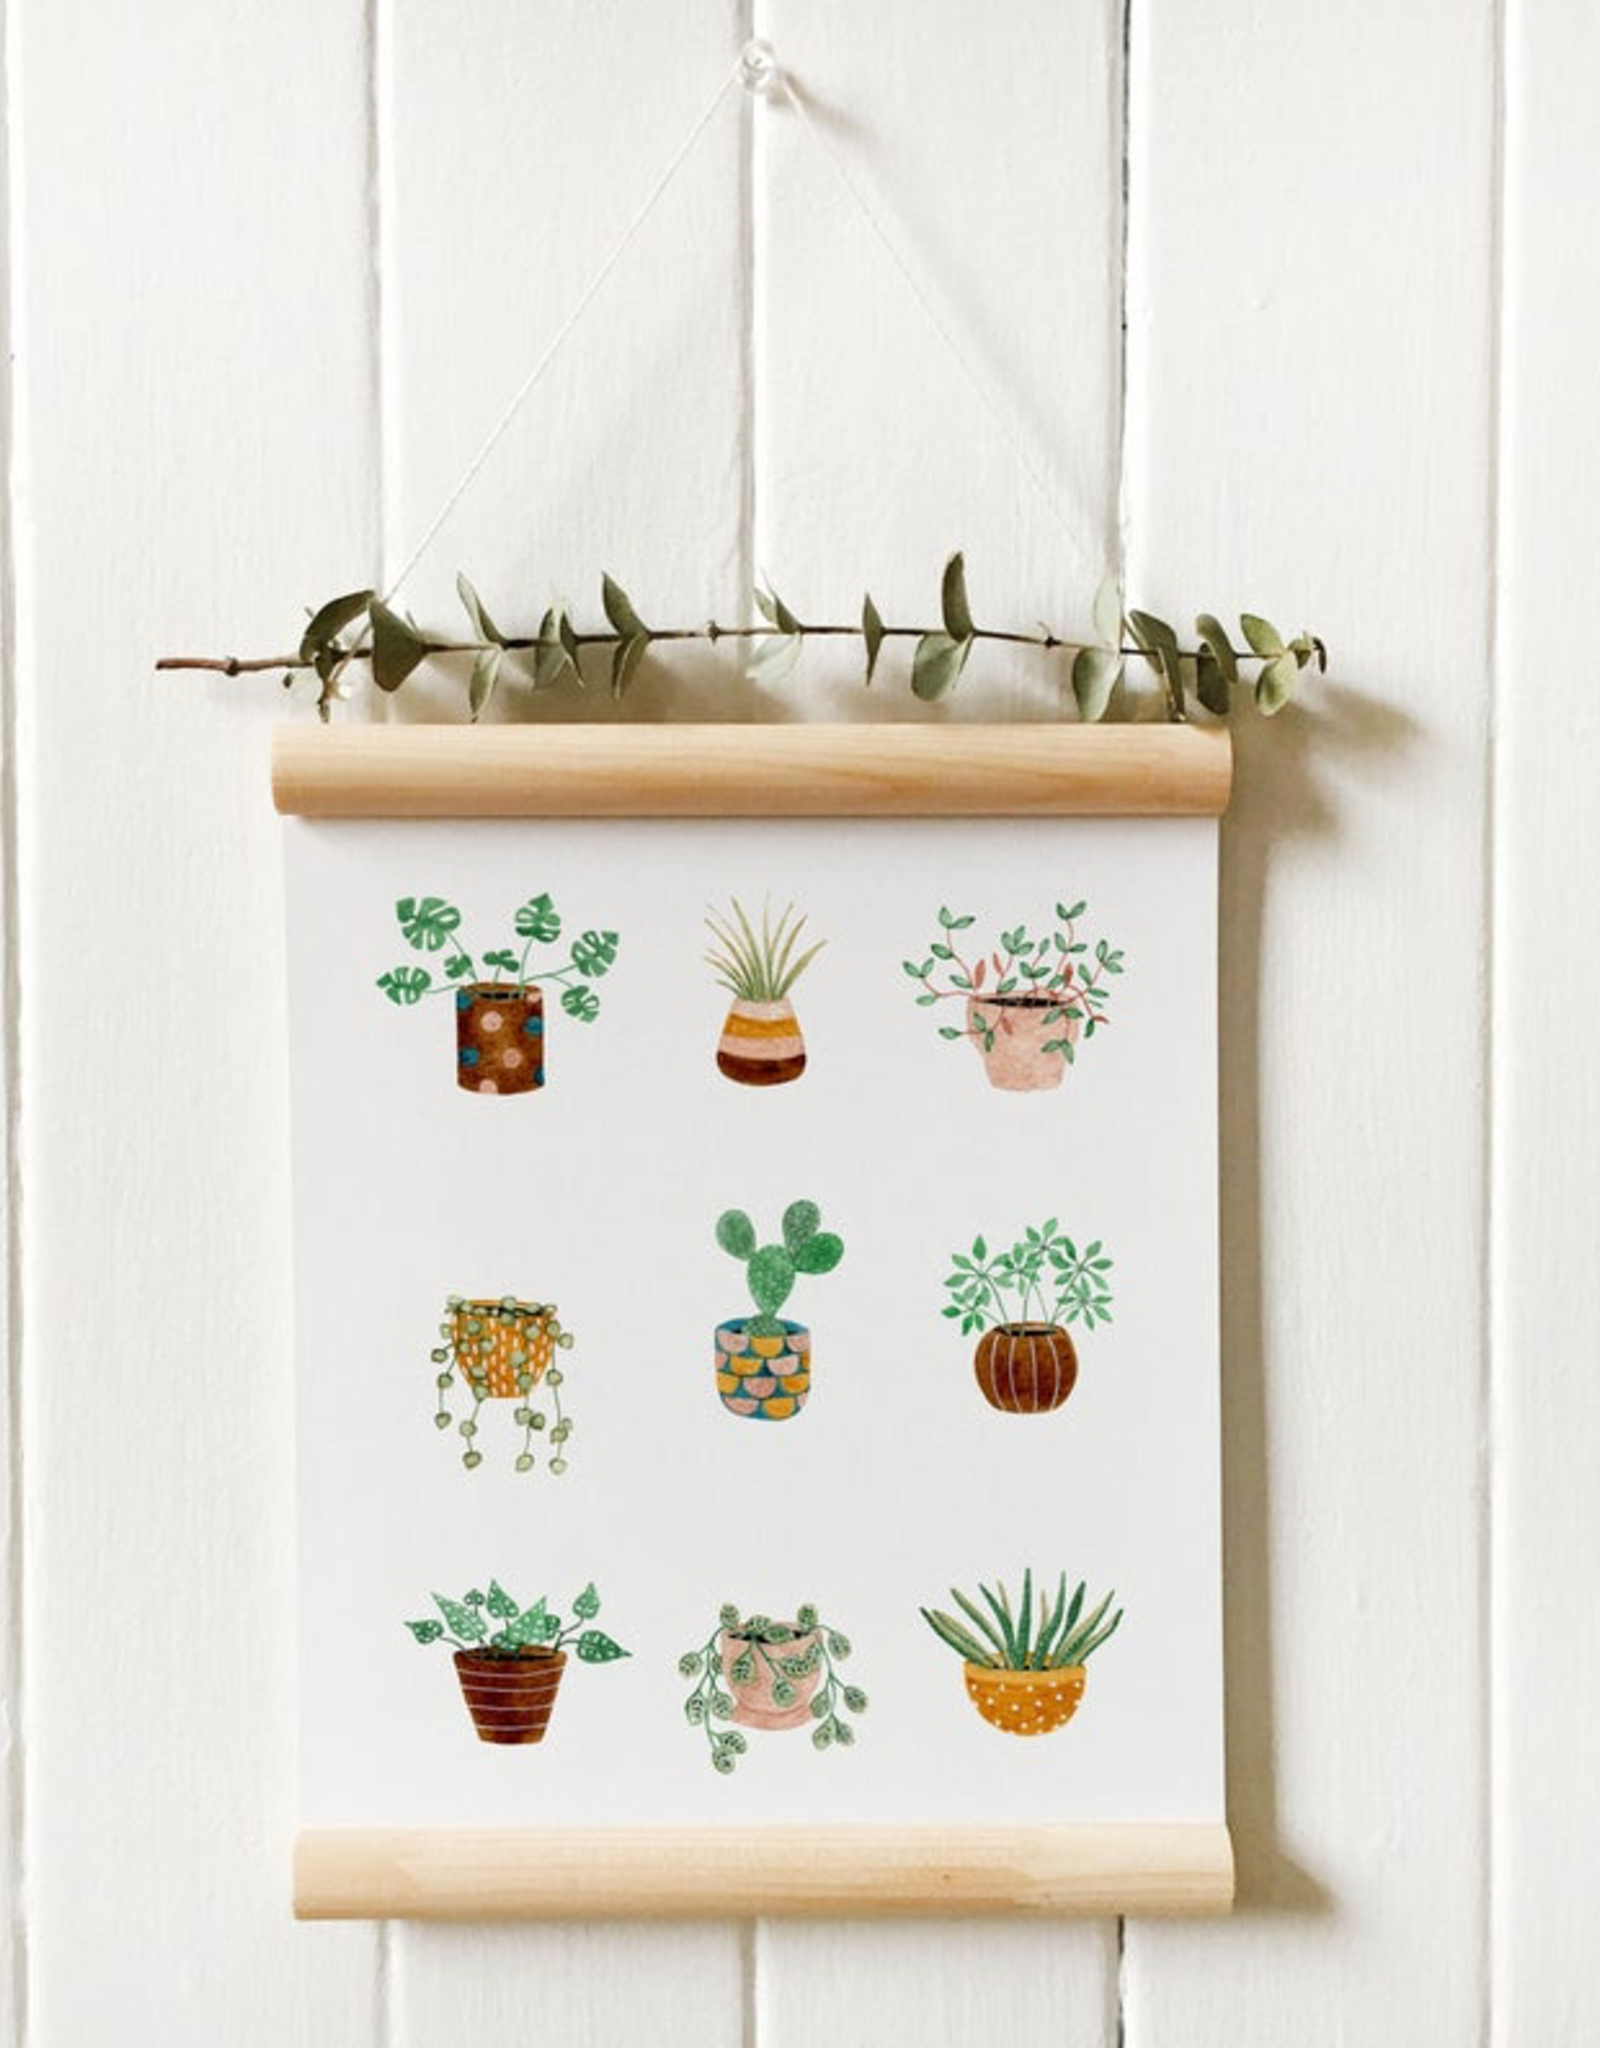 Potted Plants Print 8x10 (Unframed)